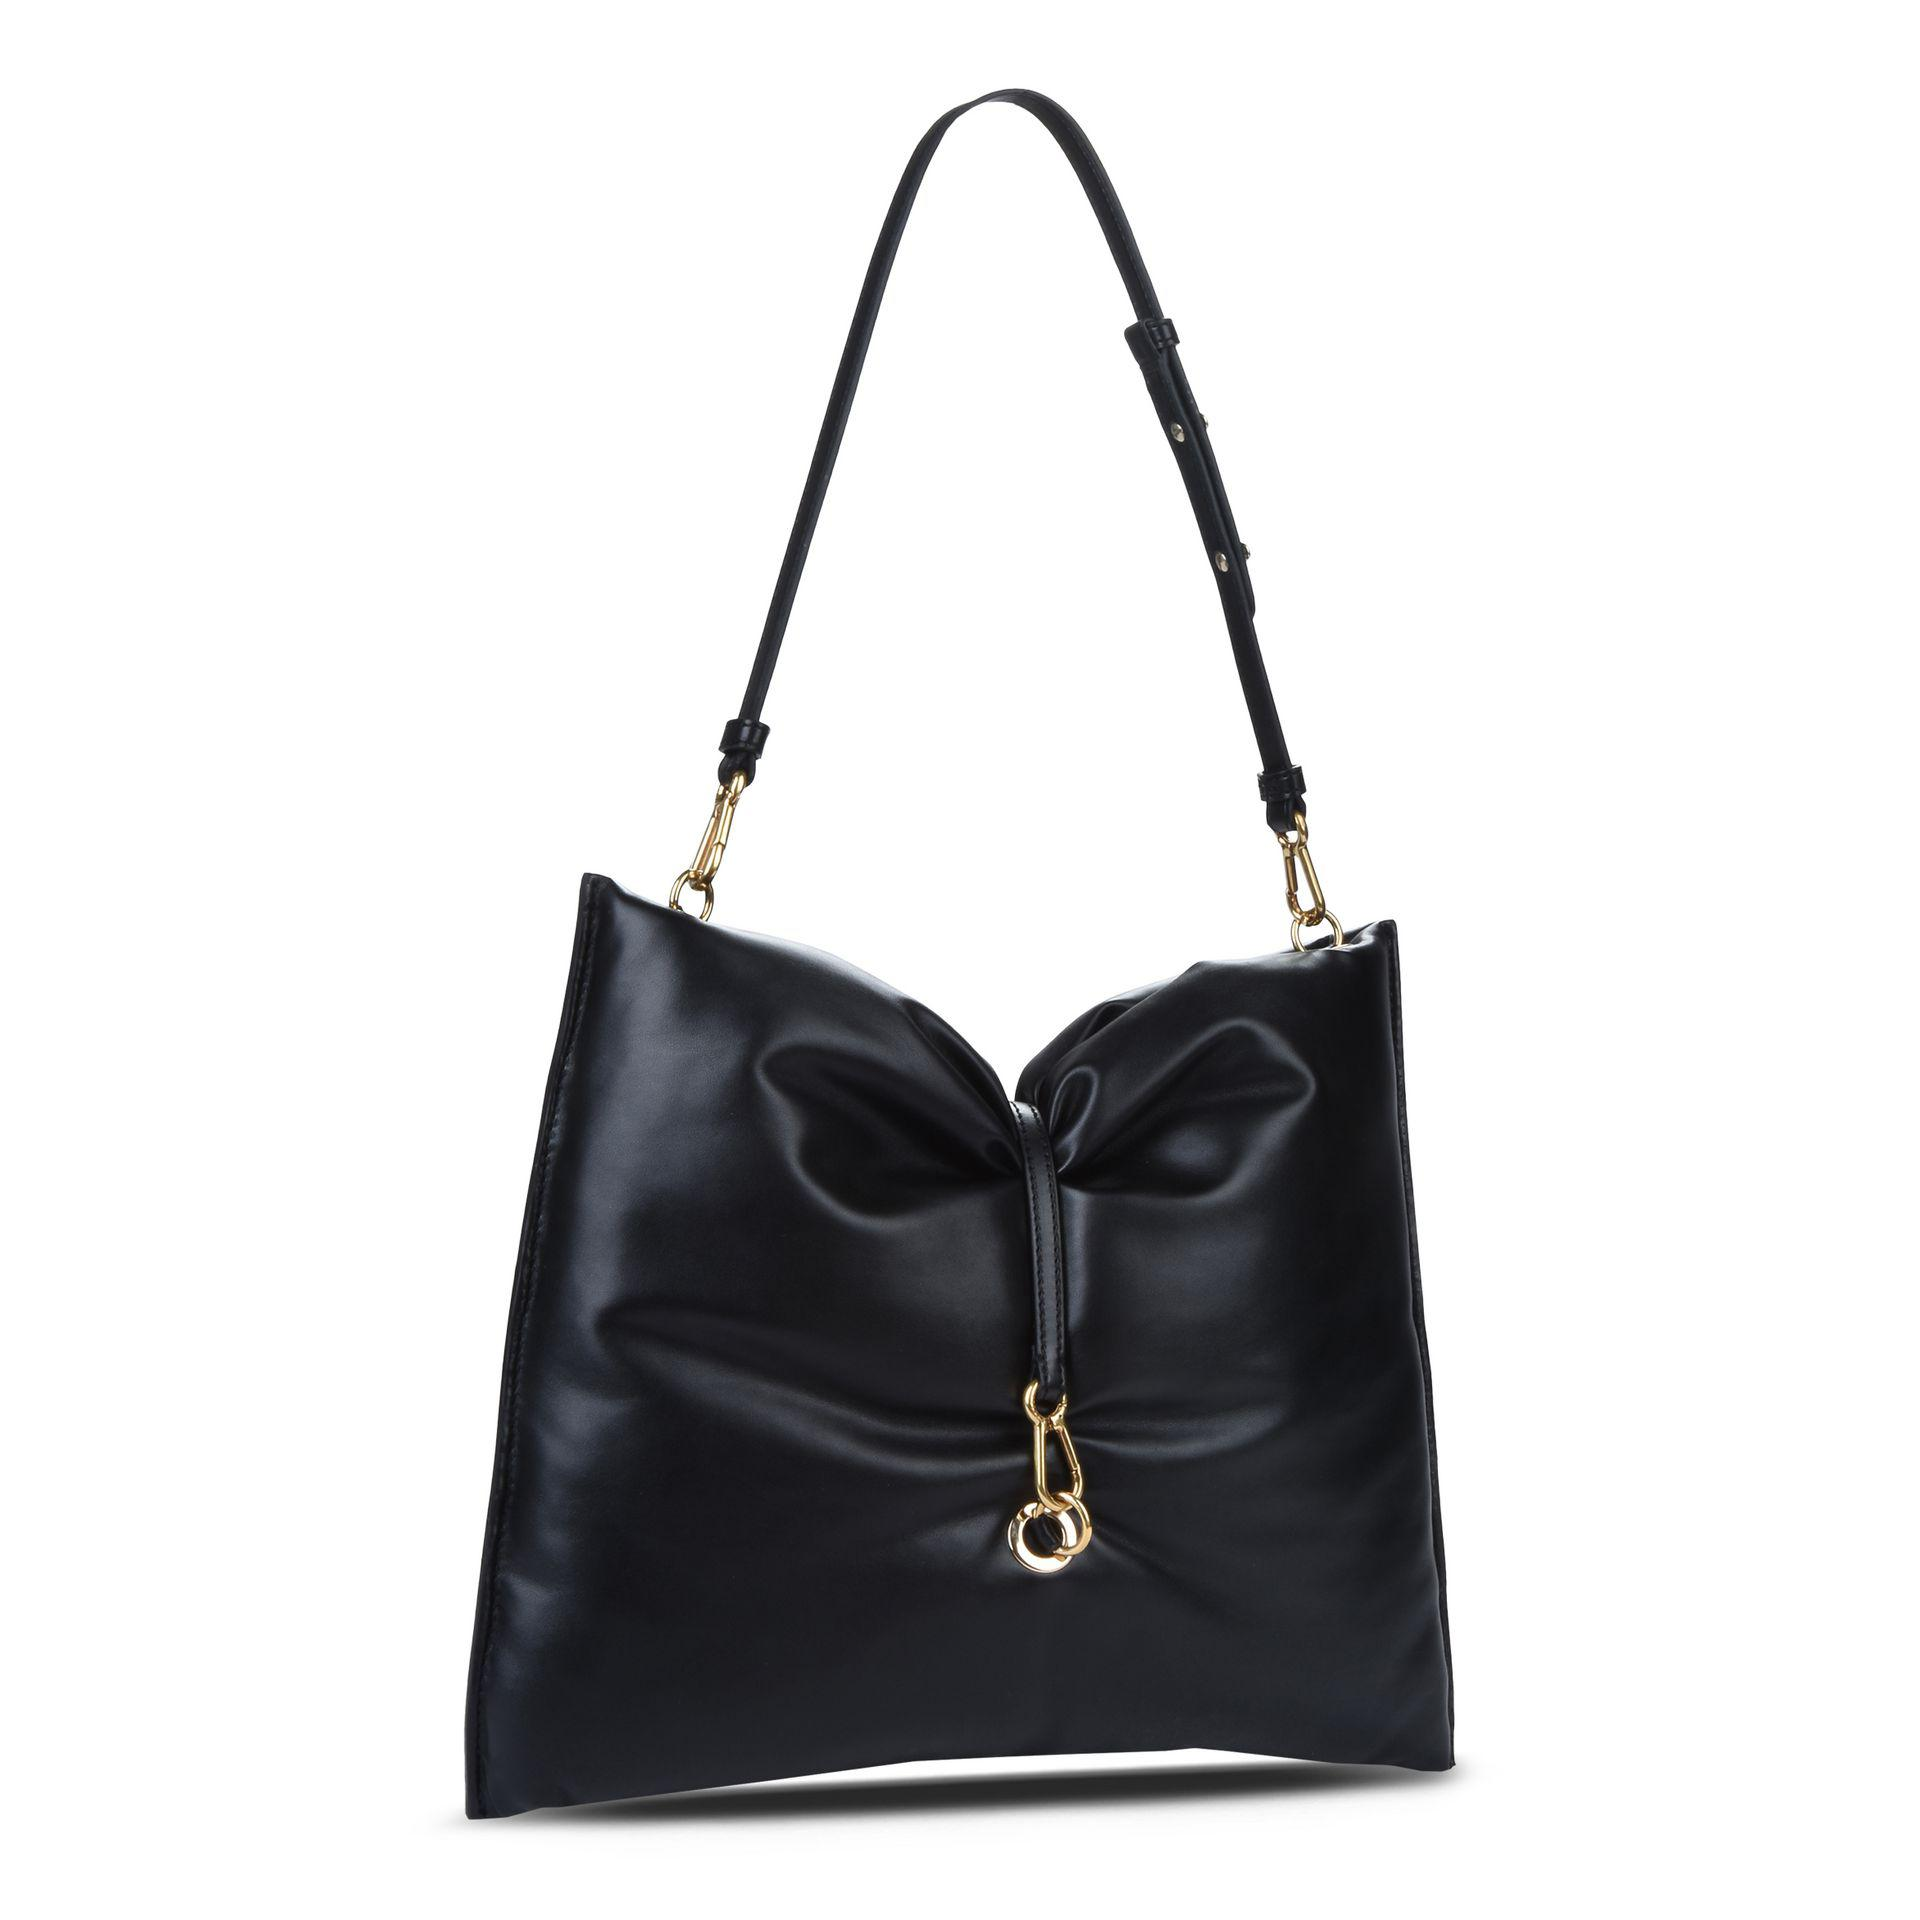 095786661c70 Lyst - Stella McCartney Black Bubble Hobo Bag in Black